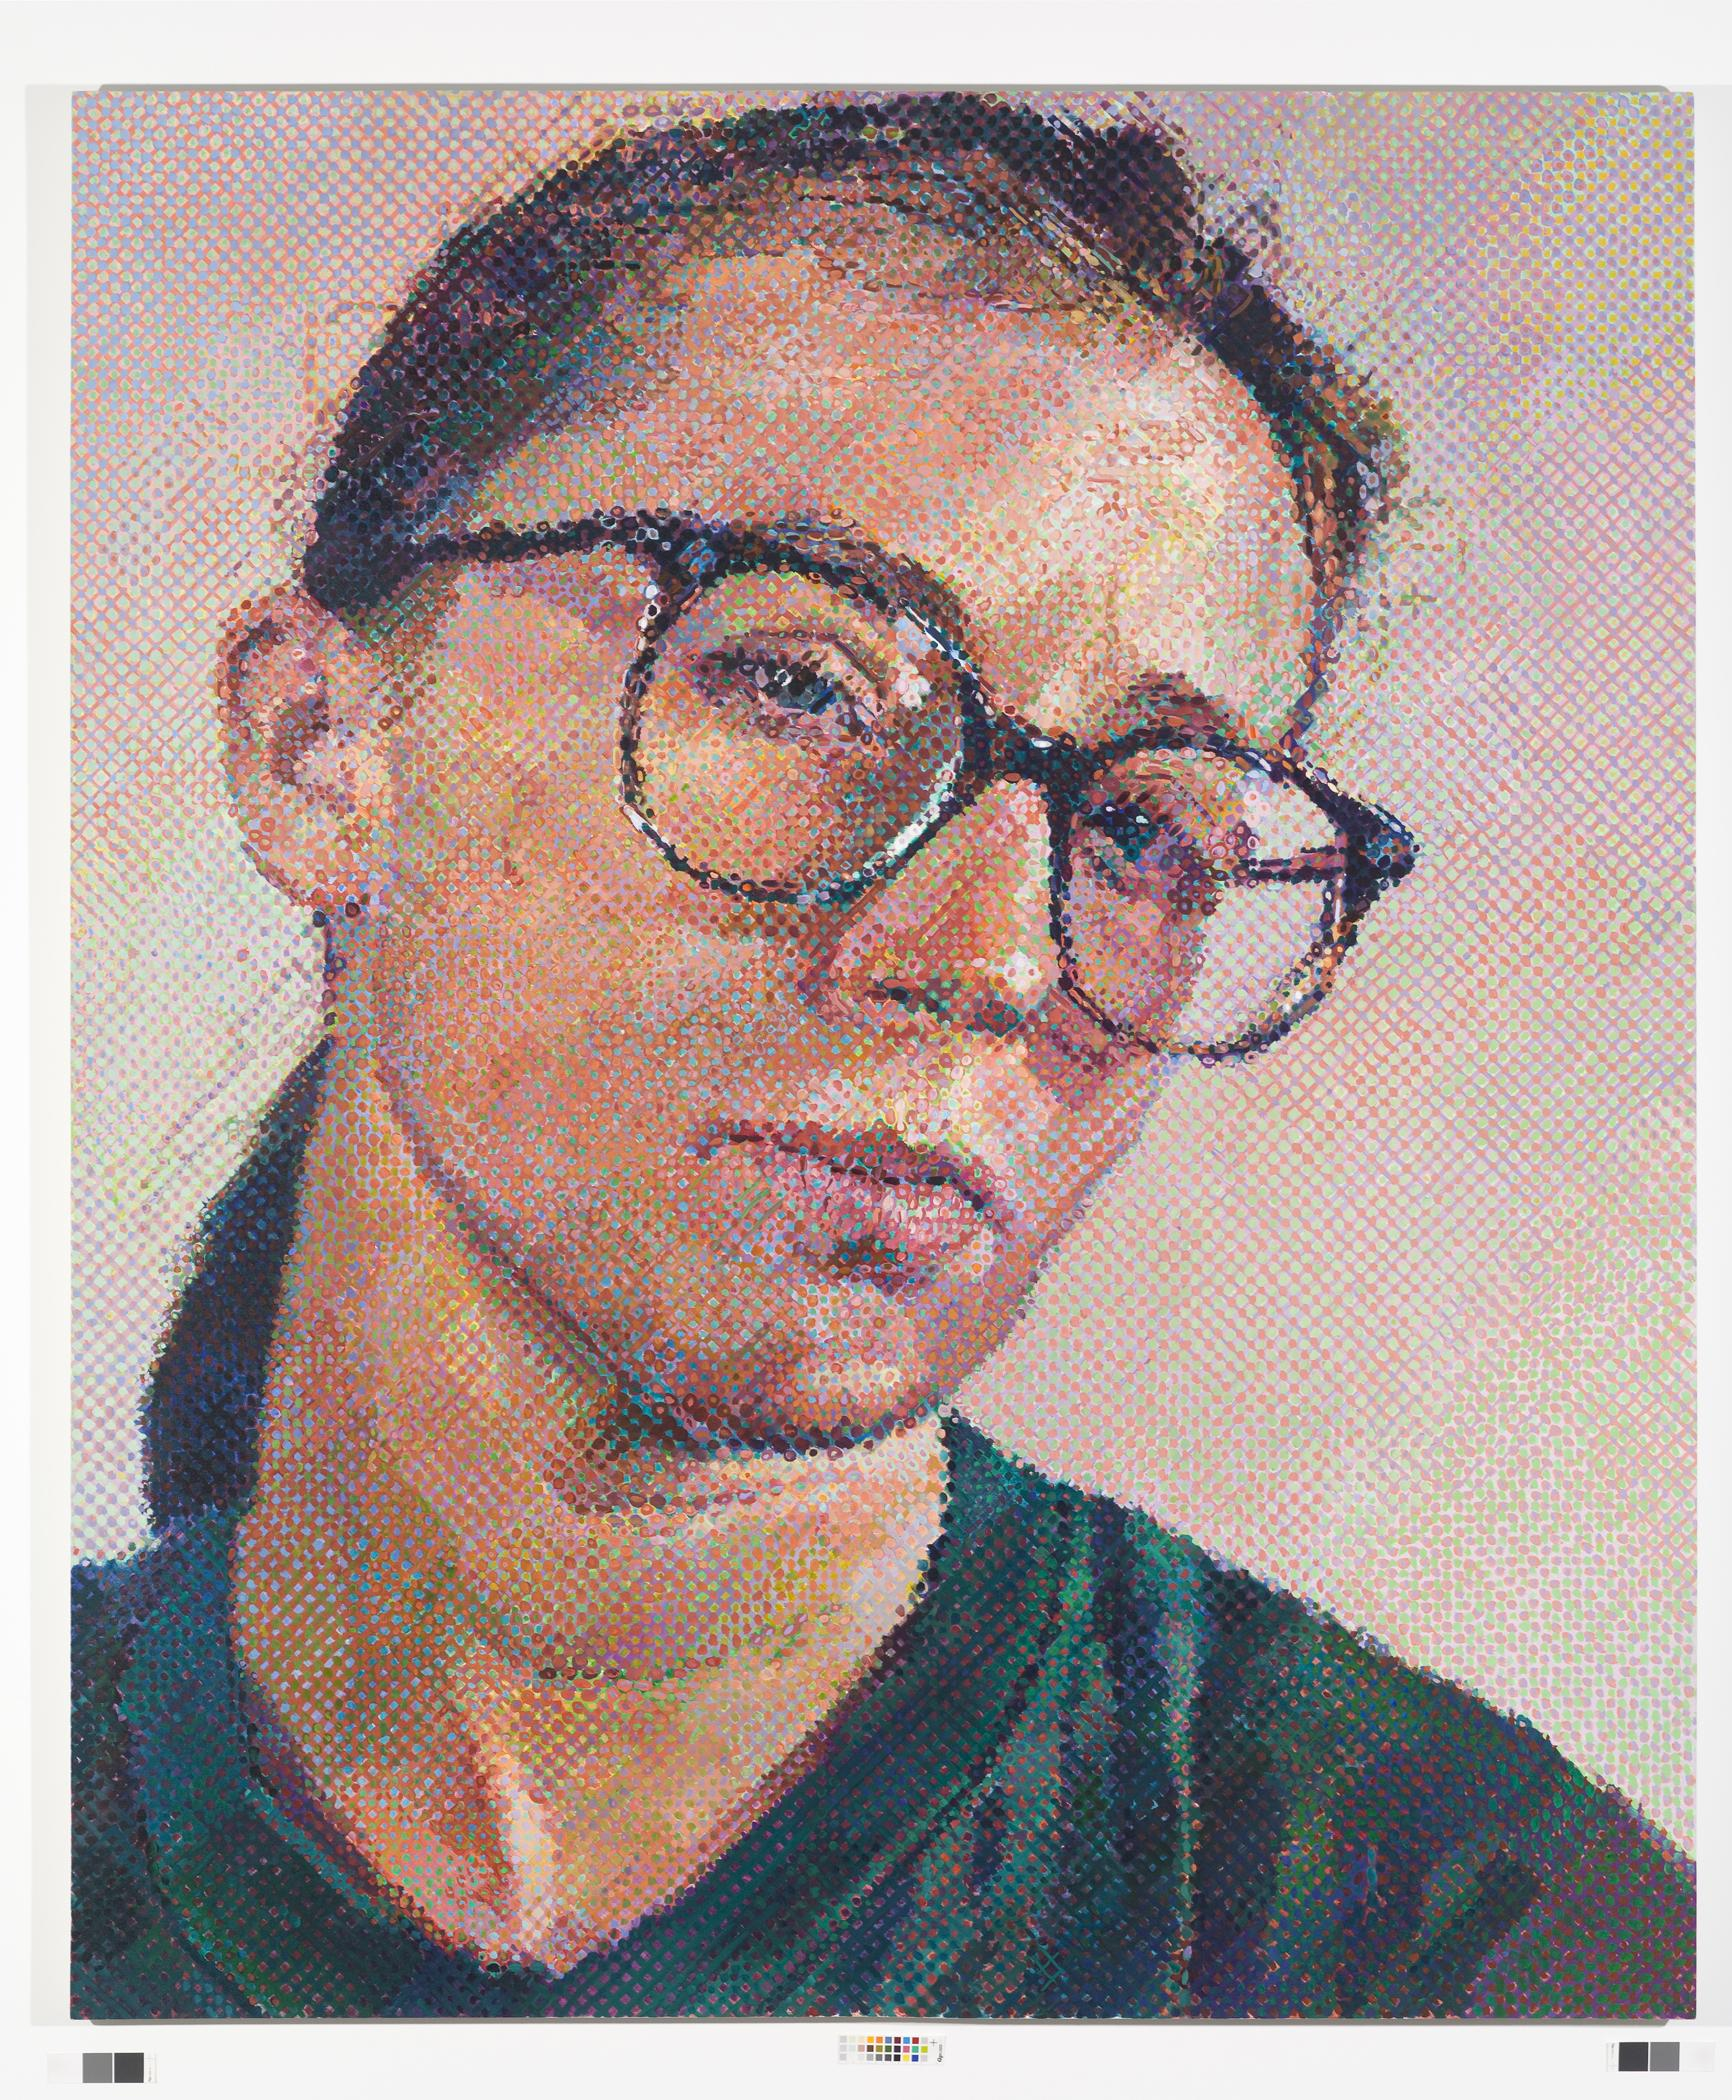 A painting shows a light-skinned person with dark hair pulled into a low ponytail behind their head wearing glasses and a dark green shirt.